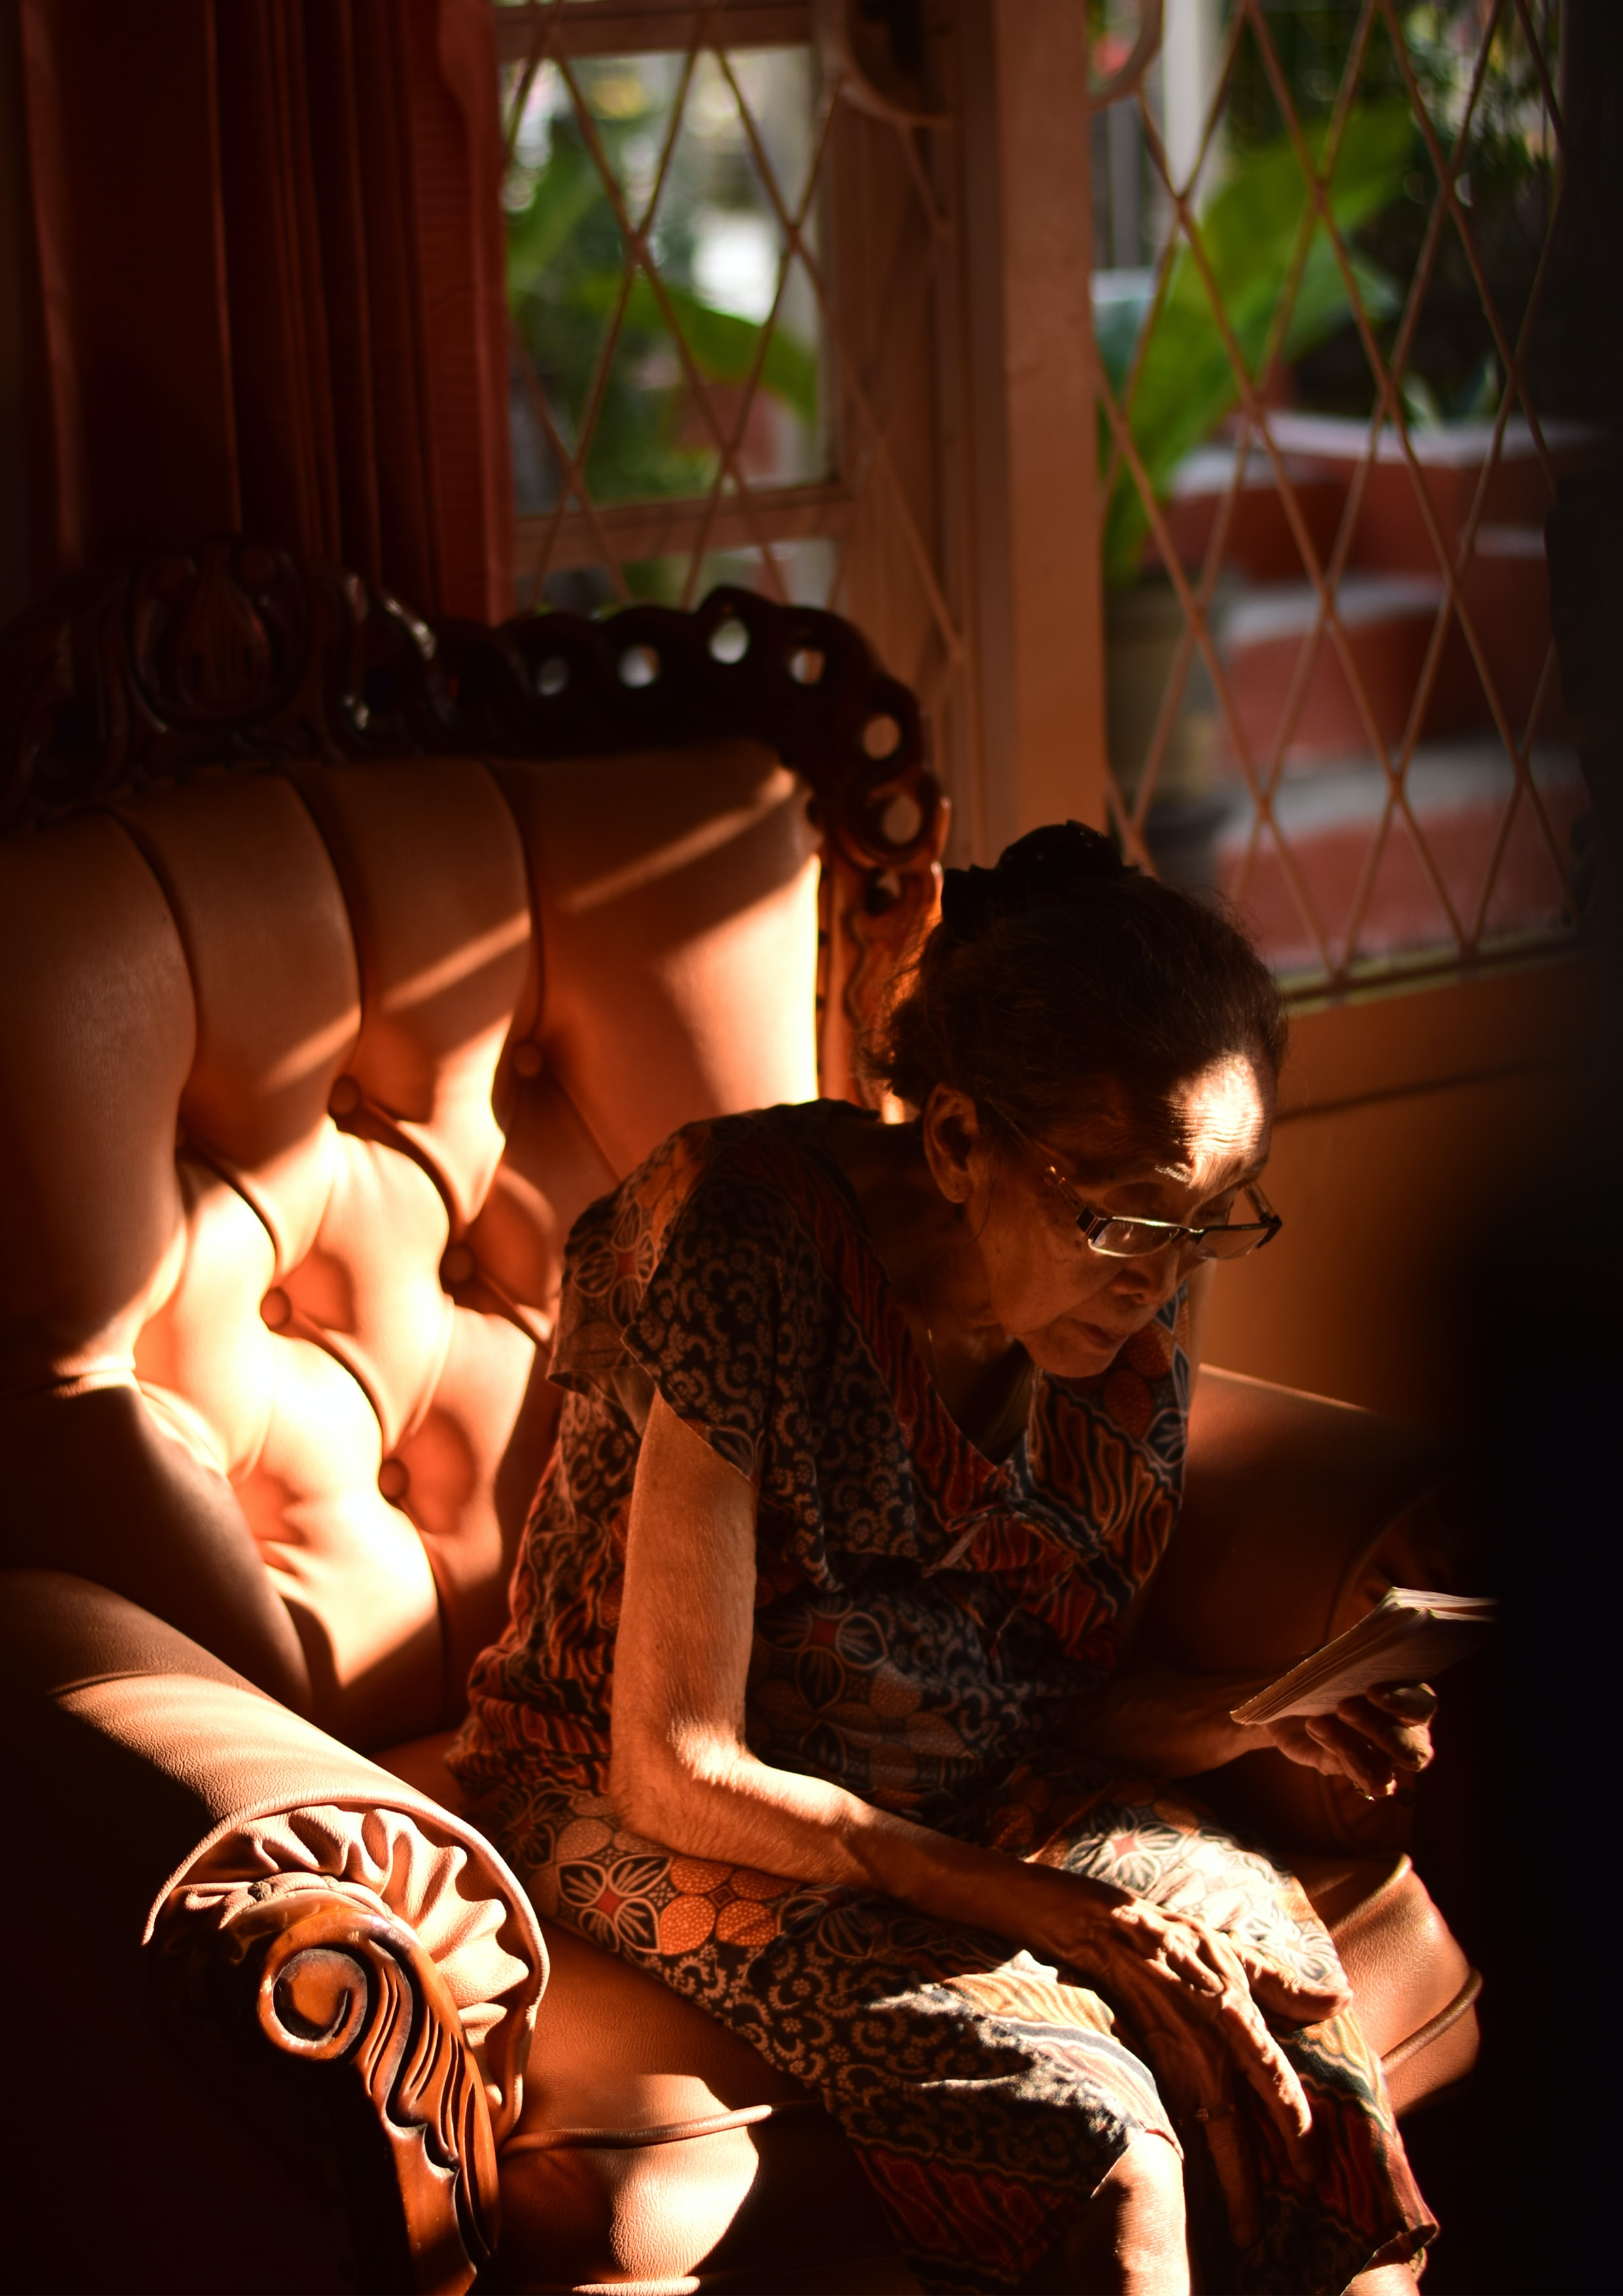 photography of sitting woman looking at papers